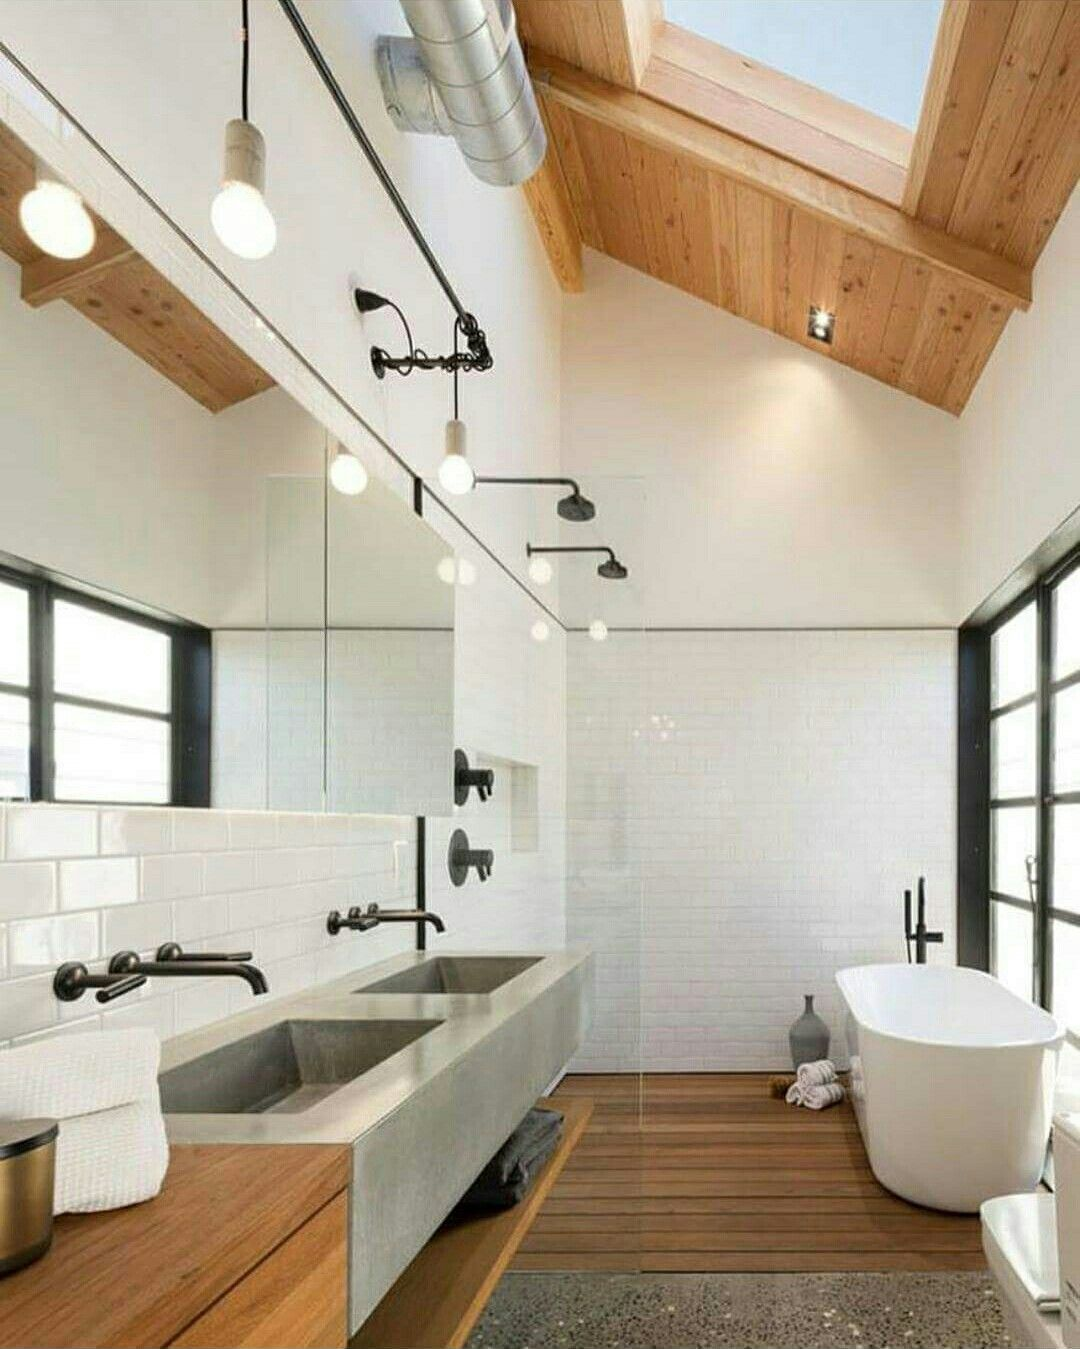 The skylight and the bath area ❤ simple elegant